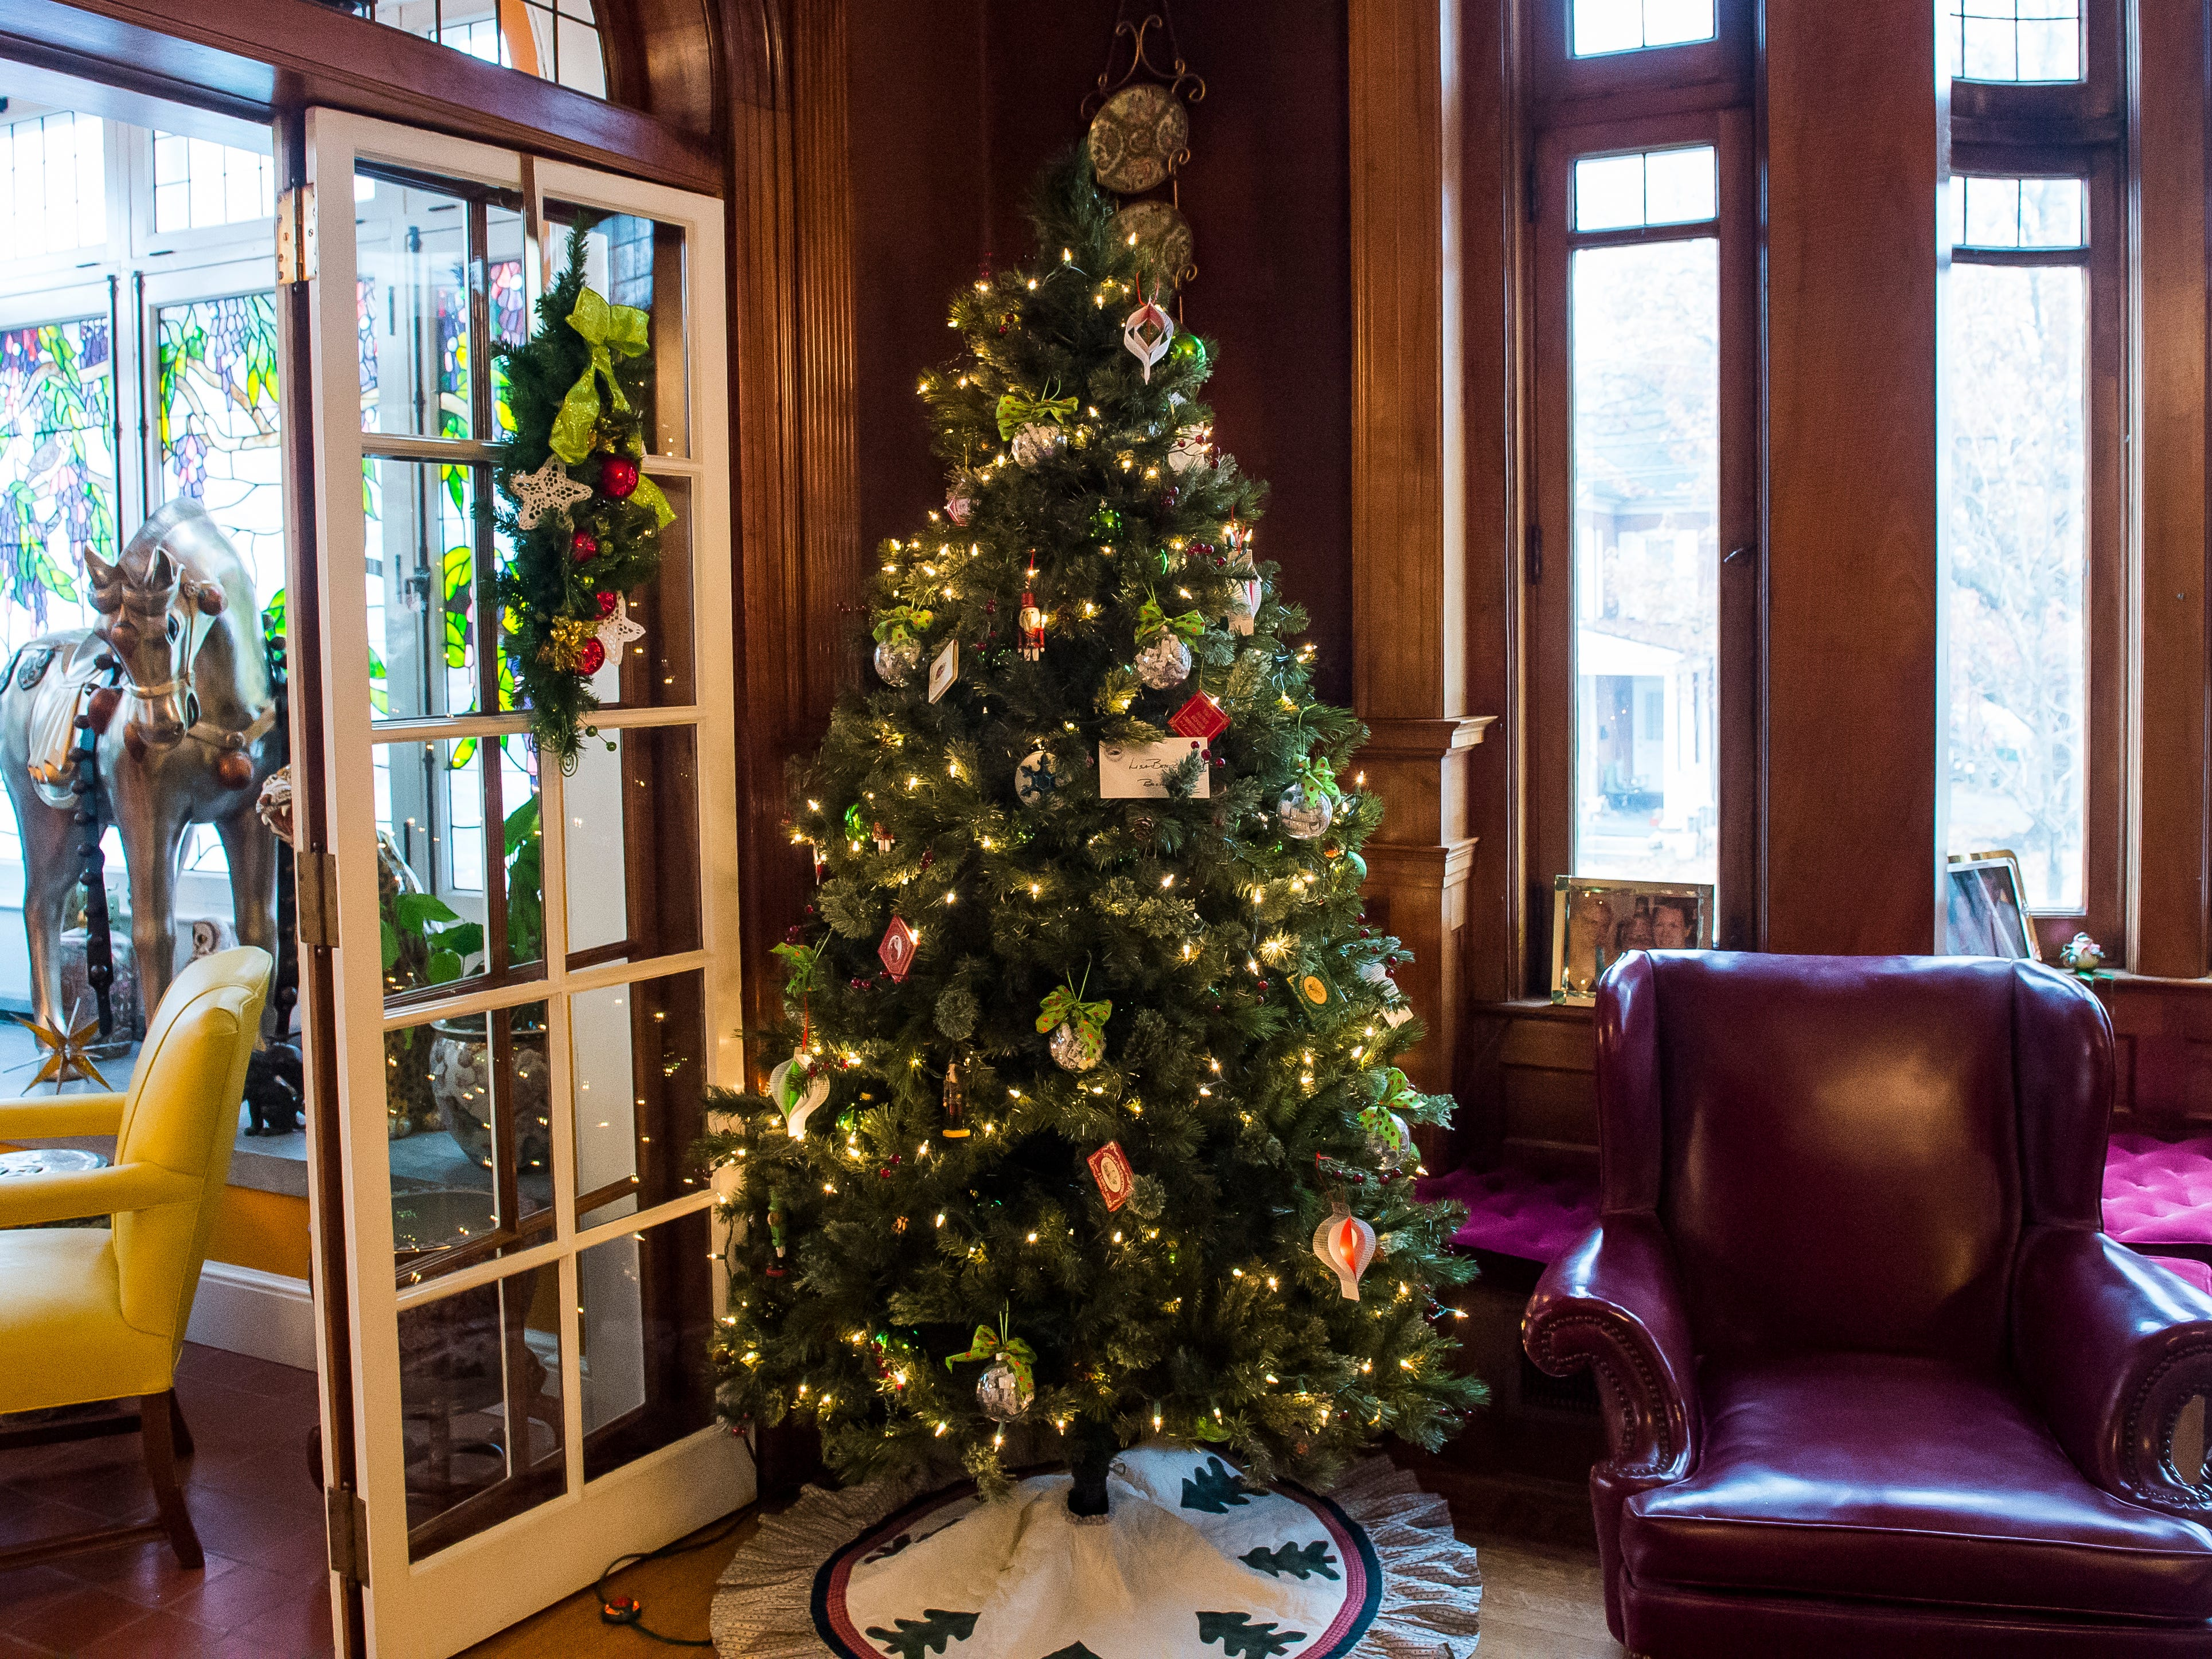 A book-themed tree is displayed in the library room of the Warehime-Myers Mansion in Hanover.